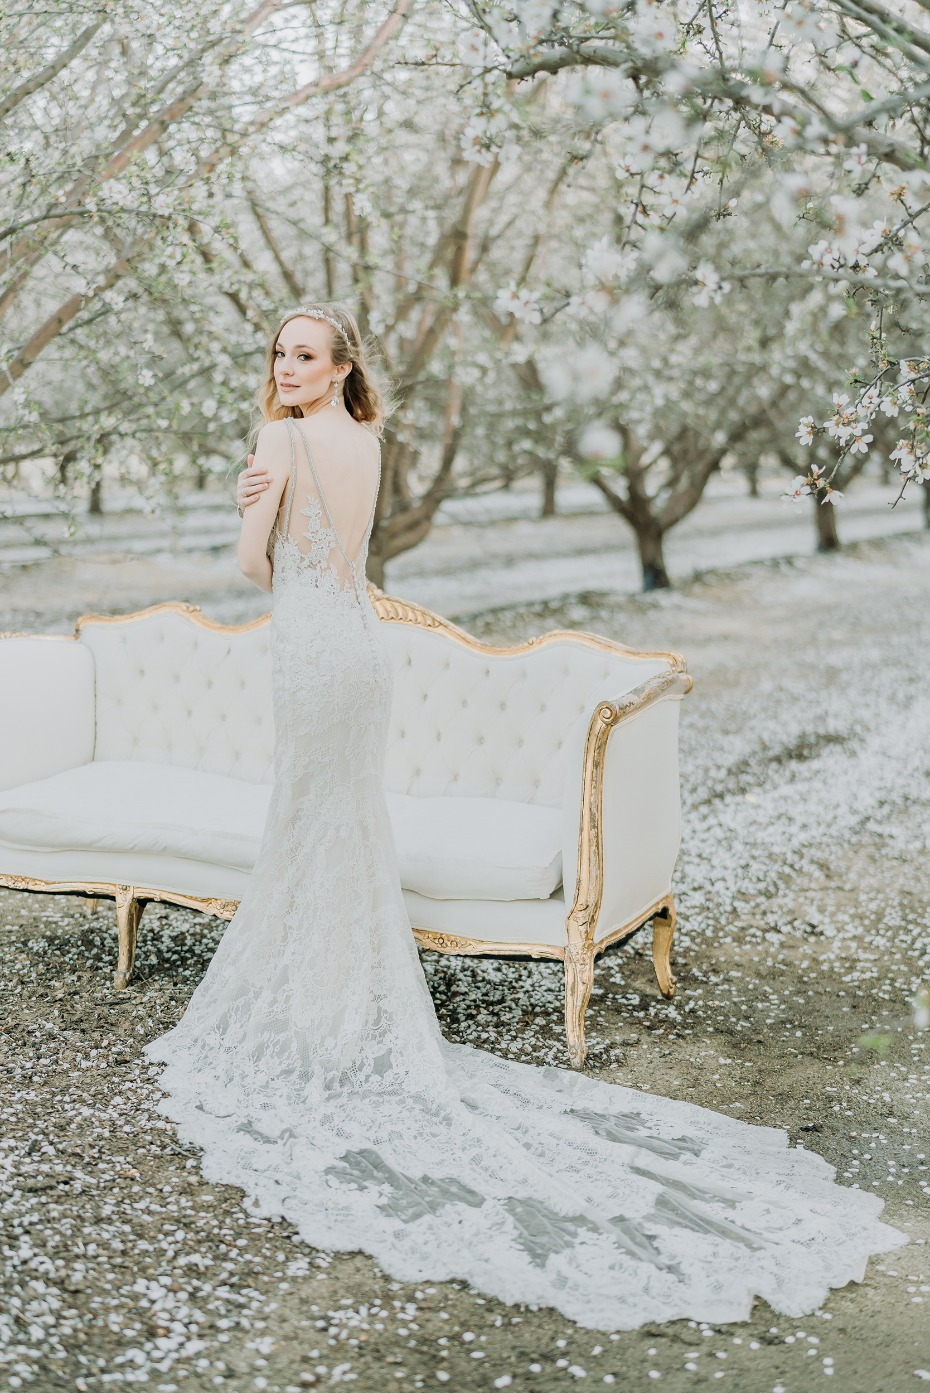 Gorgoeus lace gown from Enzoani